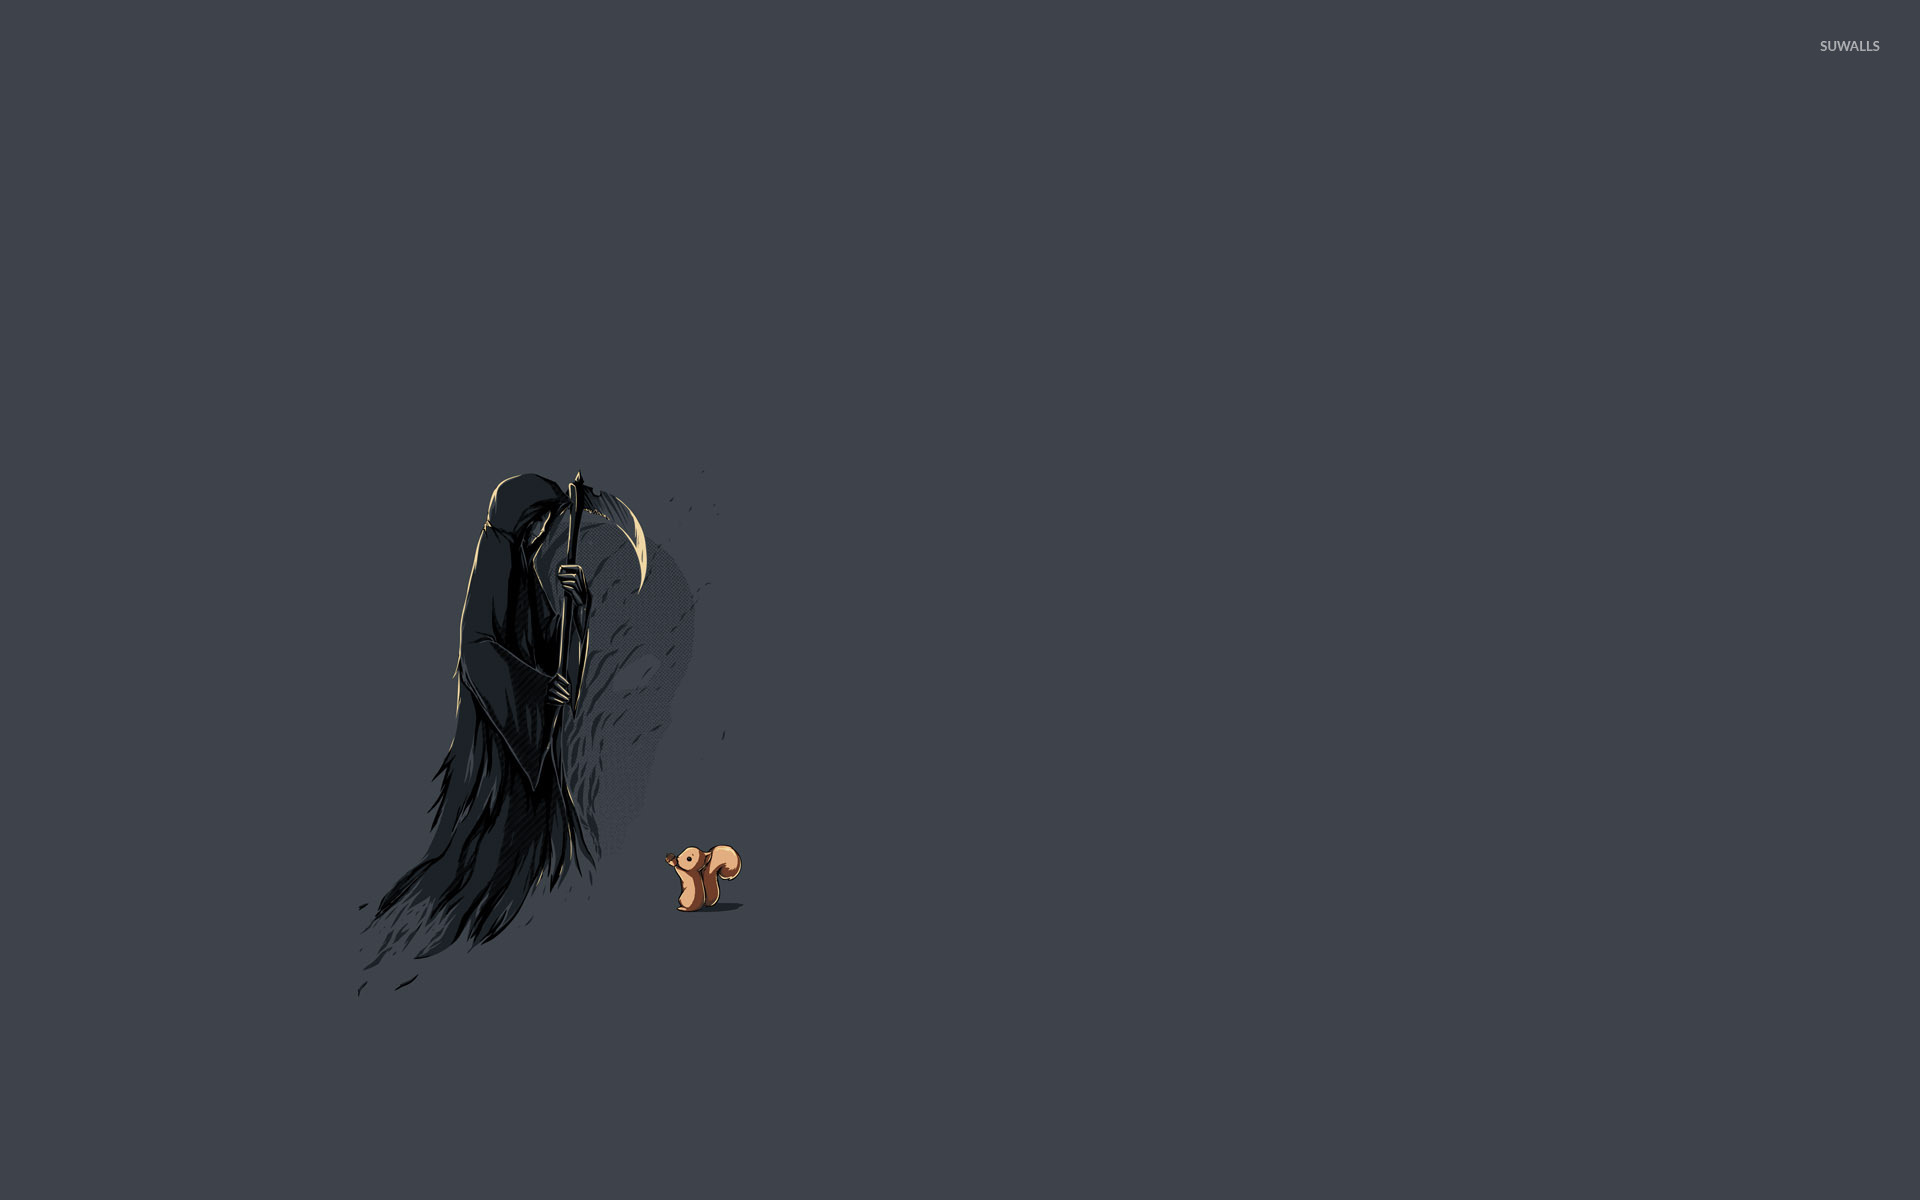 Awsome Cute Skull Wallpapers Grim Reaper Pictures Wallpapers 53 Wallpapers Hd